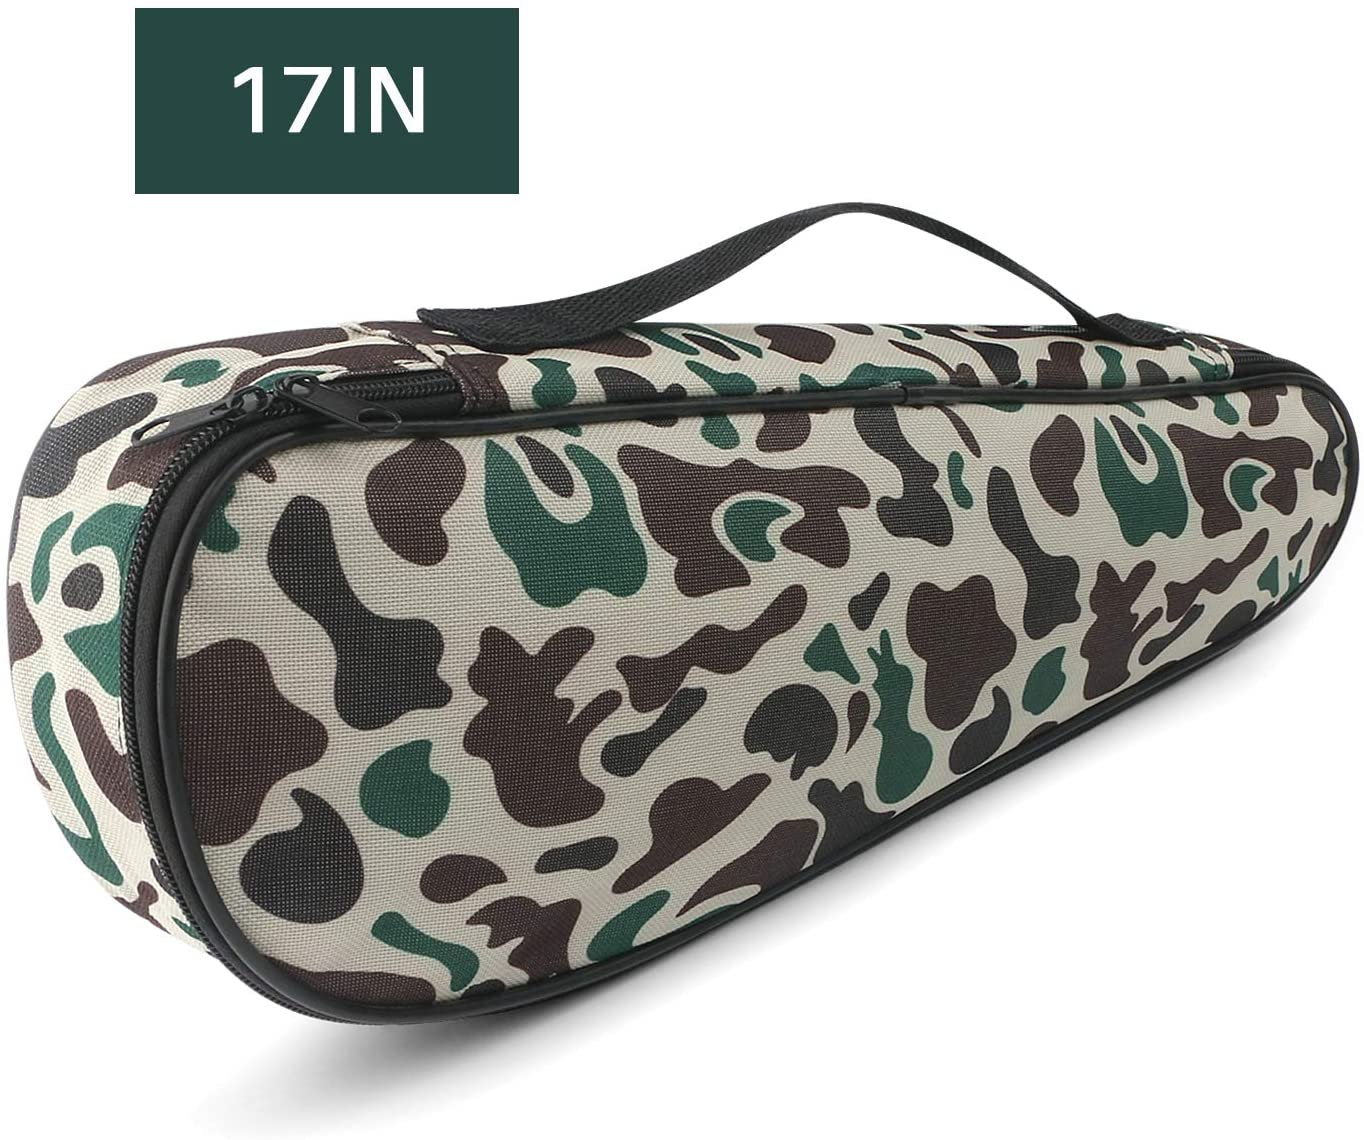 Folding Fishing Rod Carrier Bag Waterproof Fishing Pole Reel Storage Bag, Portable Carry Case Tackle Box for Travel Fishing Gear Organizer, Single Layer Large Capacity, 45cm